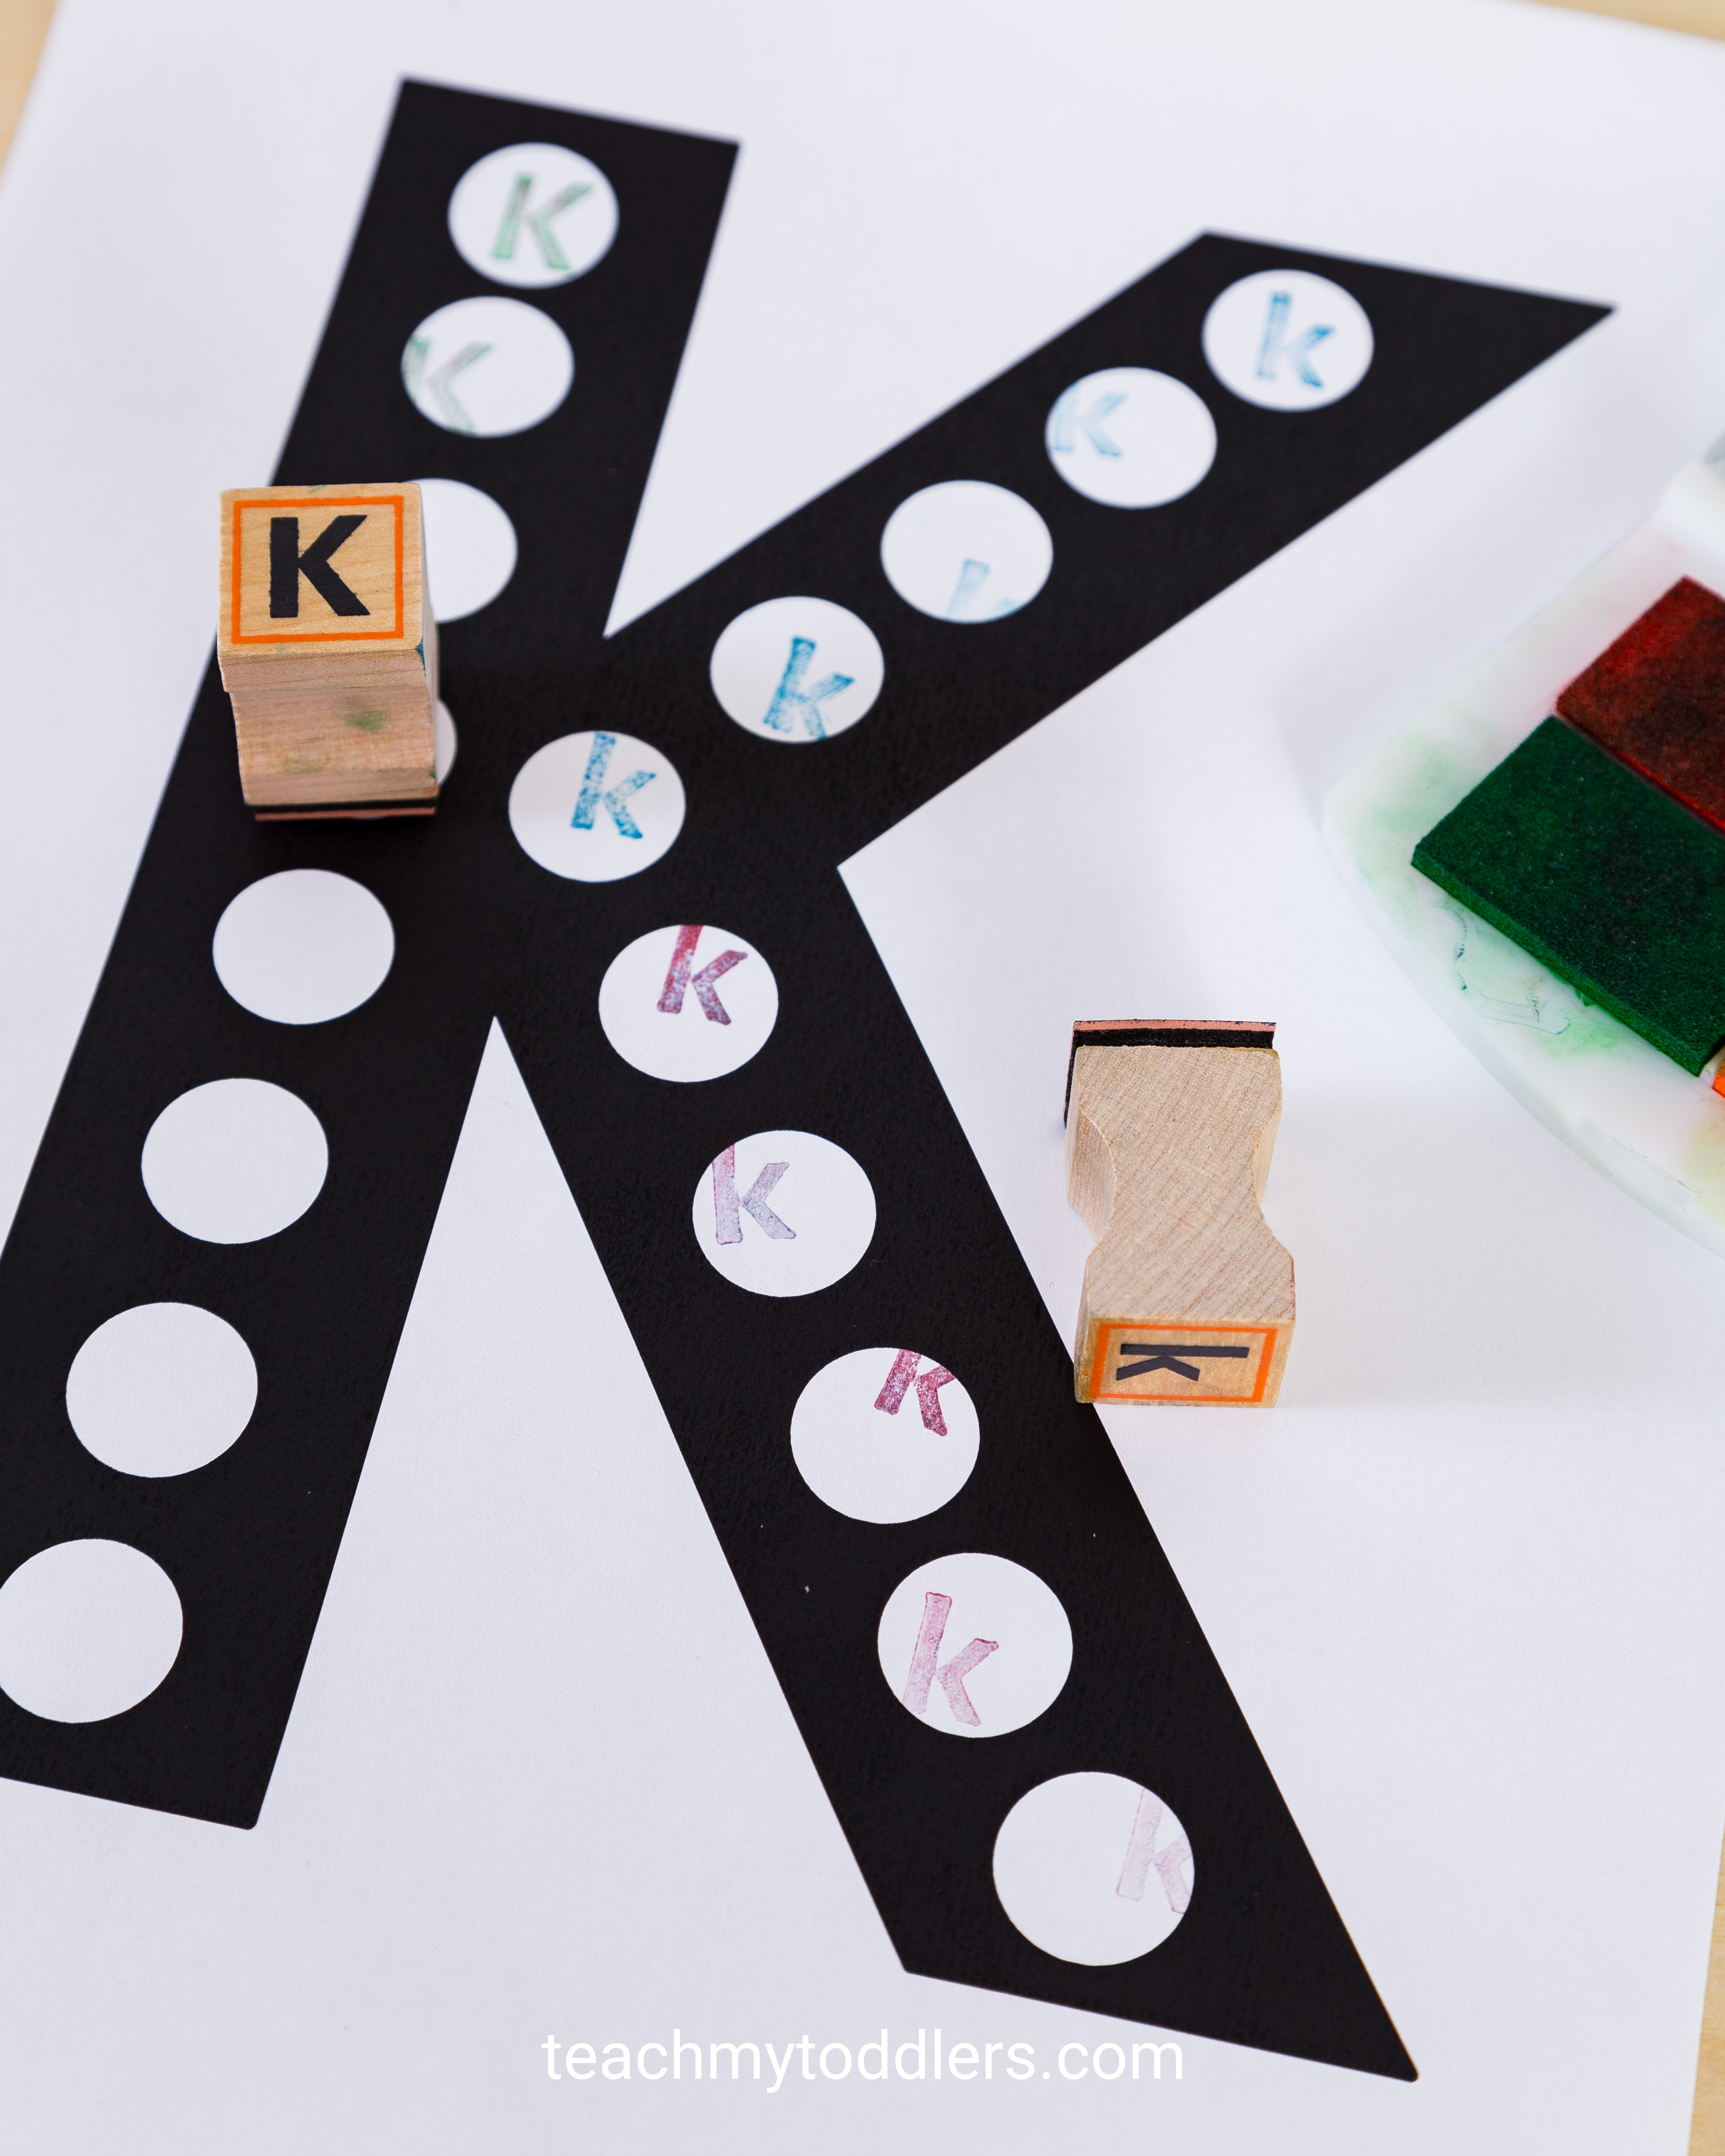 These alphabet stamps are an exciting way to teach toddlers letters